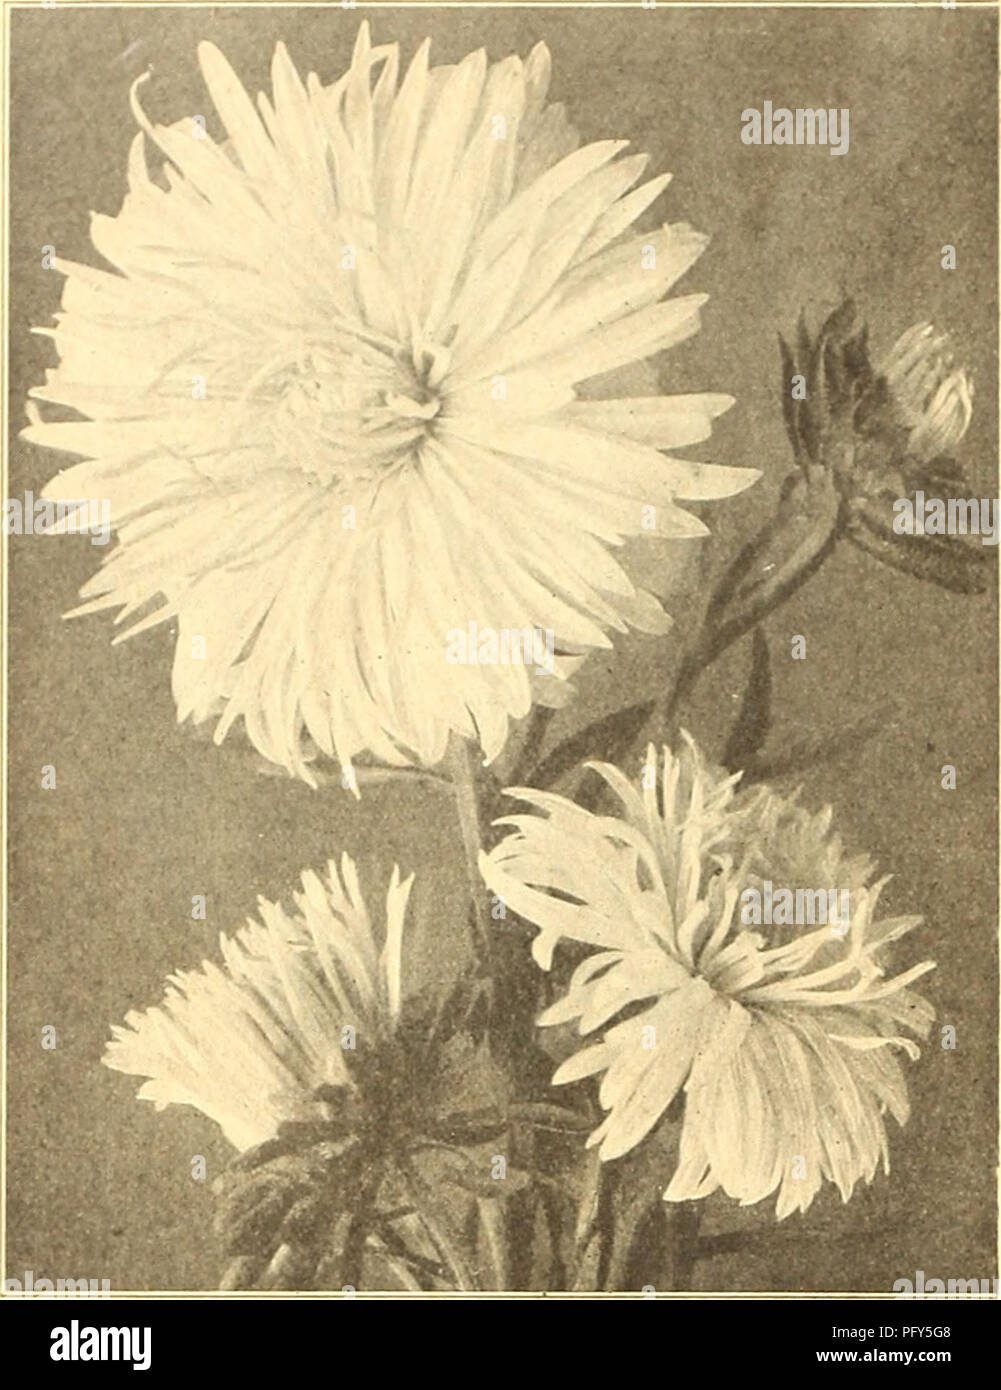 . Currie's farm and garden annual : spring 1920 45th year. Flowers Seeds Catalogs; Bulbs (Plants) Seeds Catalogs; Vegetables Seeds Catalogs; Nurseries (Horticulture) Catalogs; Plants, Ornamental Catalogs; Gardening Equipment and supplies Catalogs. 50 CURRIE BROTHERS COMPANY, MILWAUKEE, WIS.. CURRIE'S CHOICE ASTERS ASTBRMUM. splendid new type of the HohenzoUern Aster, of im- mense size, with very full center. The plant reaches a height of from 18 to 24 inches, growing very straight, with strong, sturdy stems, starting near the base. We offer it in three colors. AVhIte, Pink, Laven- der and -Mix - Stock Image